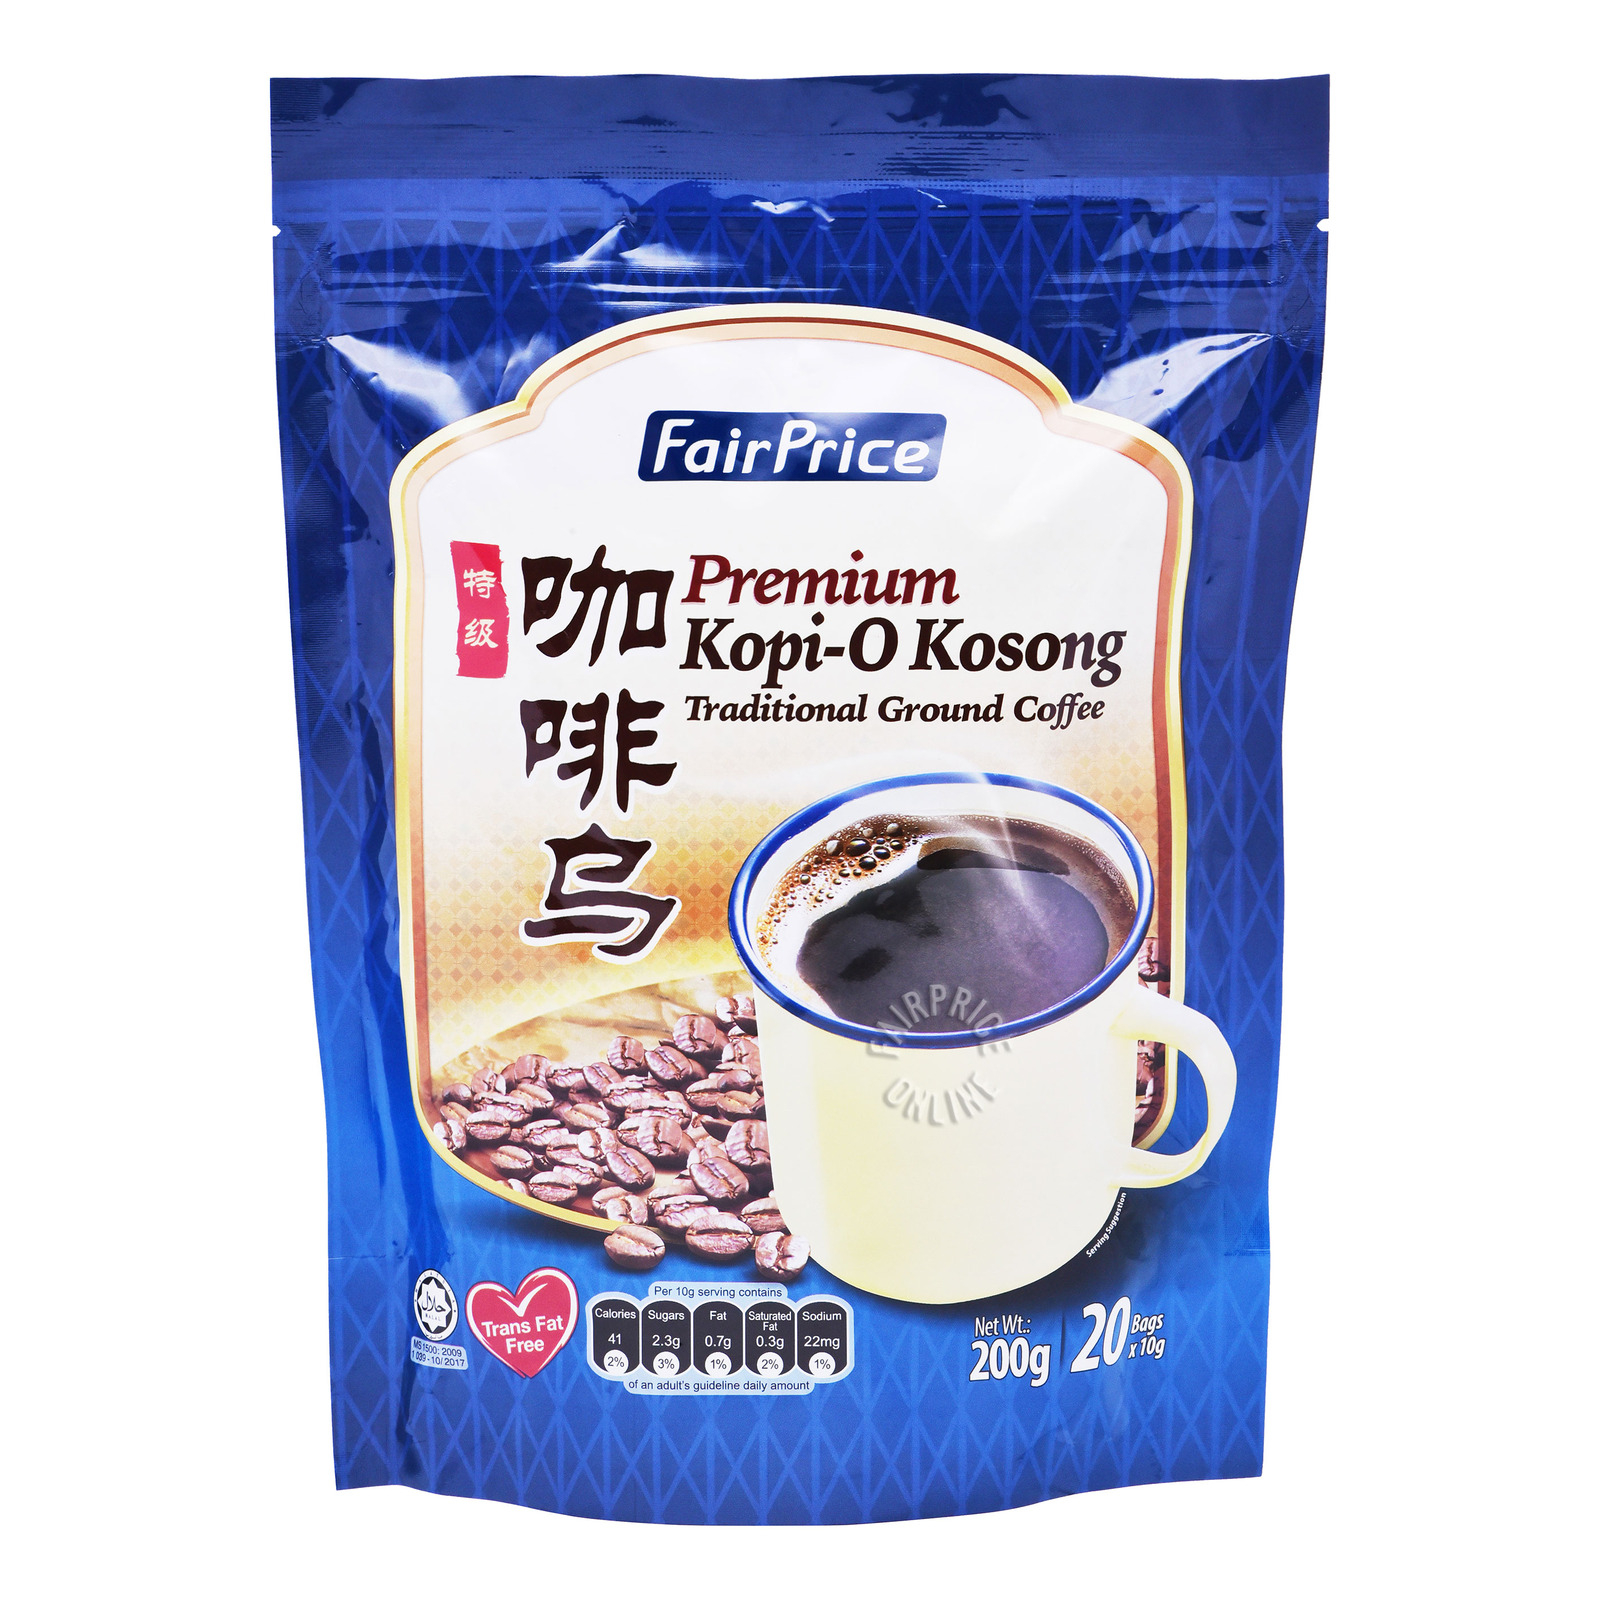 FairPrice Instant Traditional Black Coffee - Kopi-O Kosong